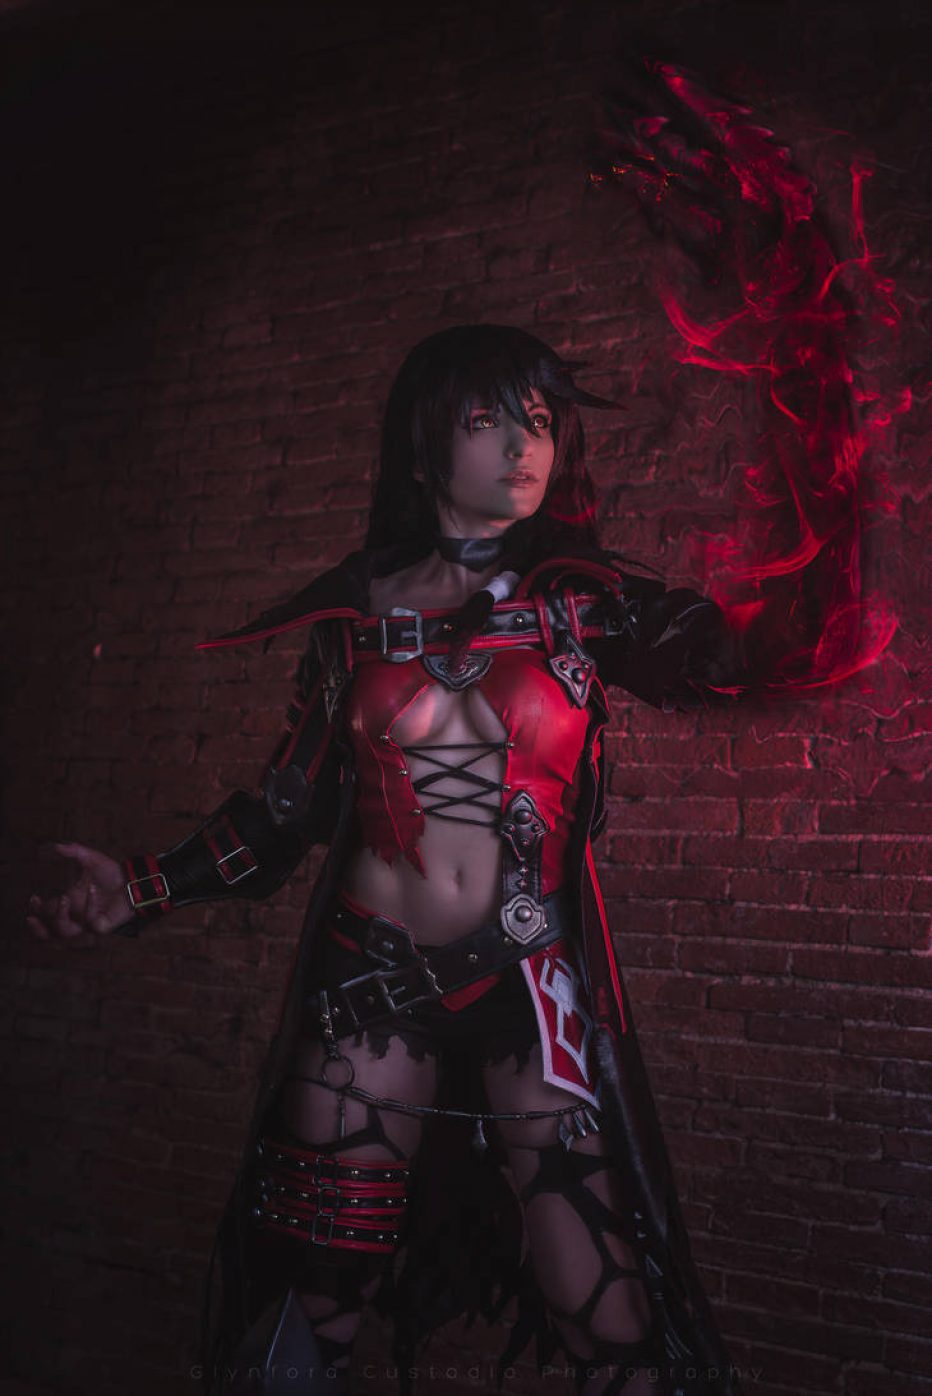 Velvet-Crowe-Tales-of-Berseria-Cosplay-Gamers-Heroes-9.jpg